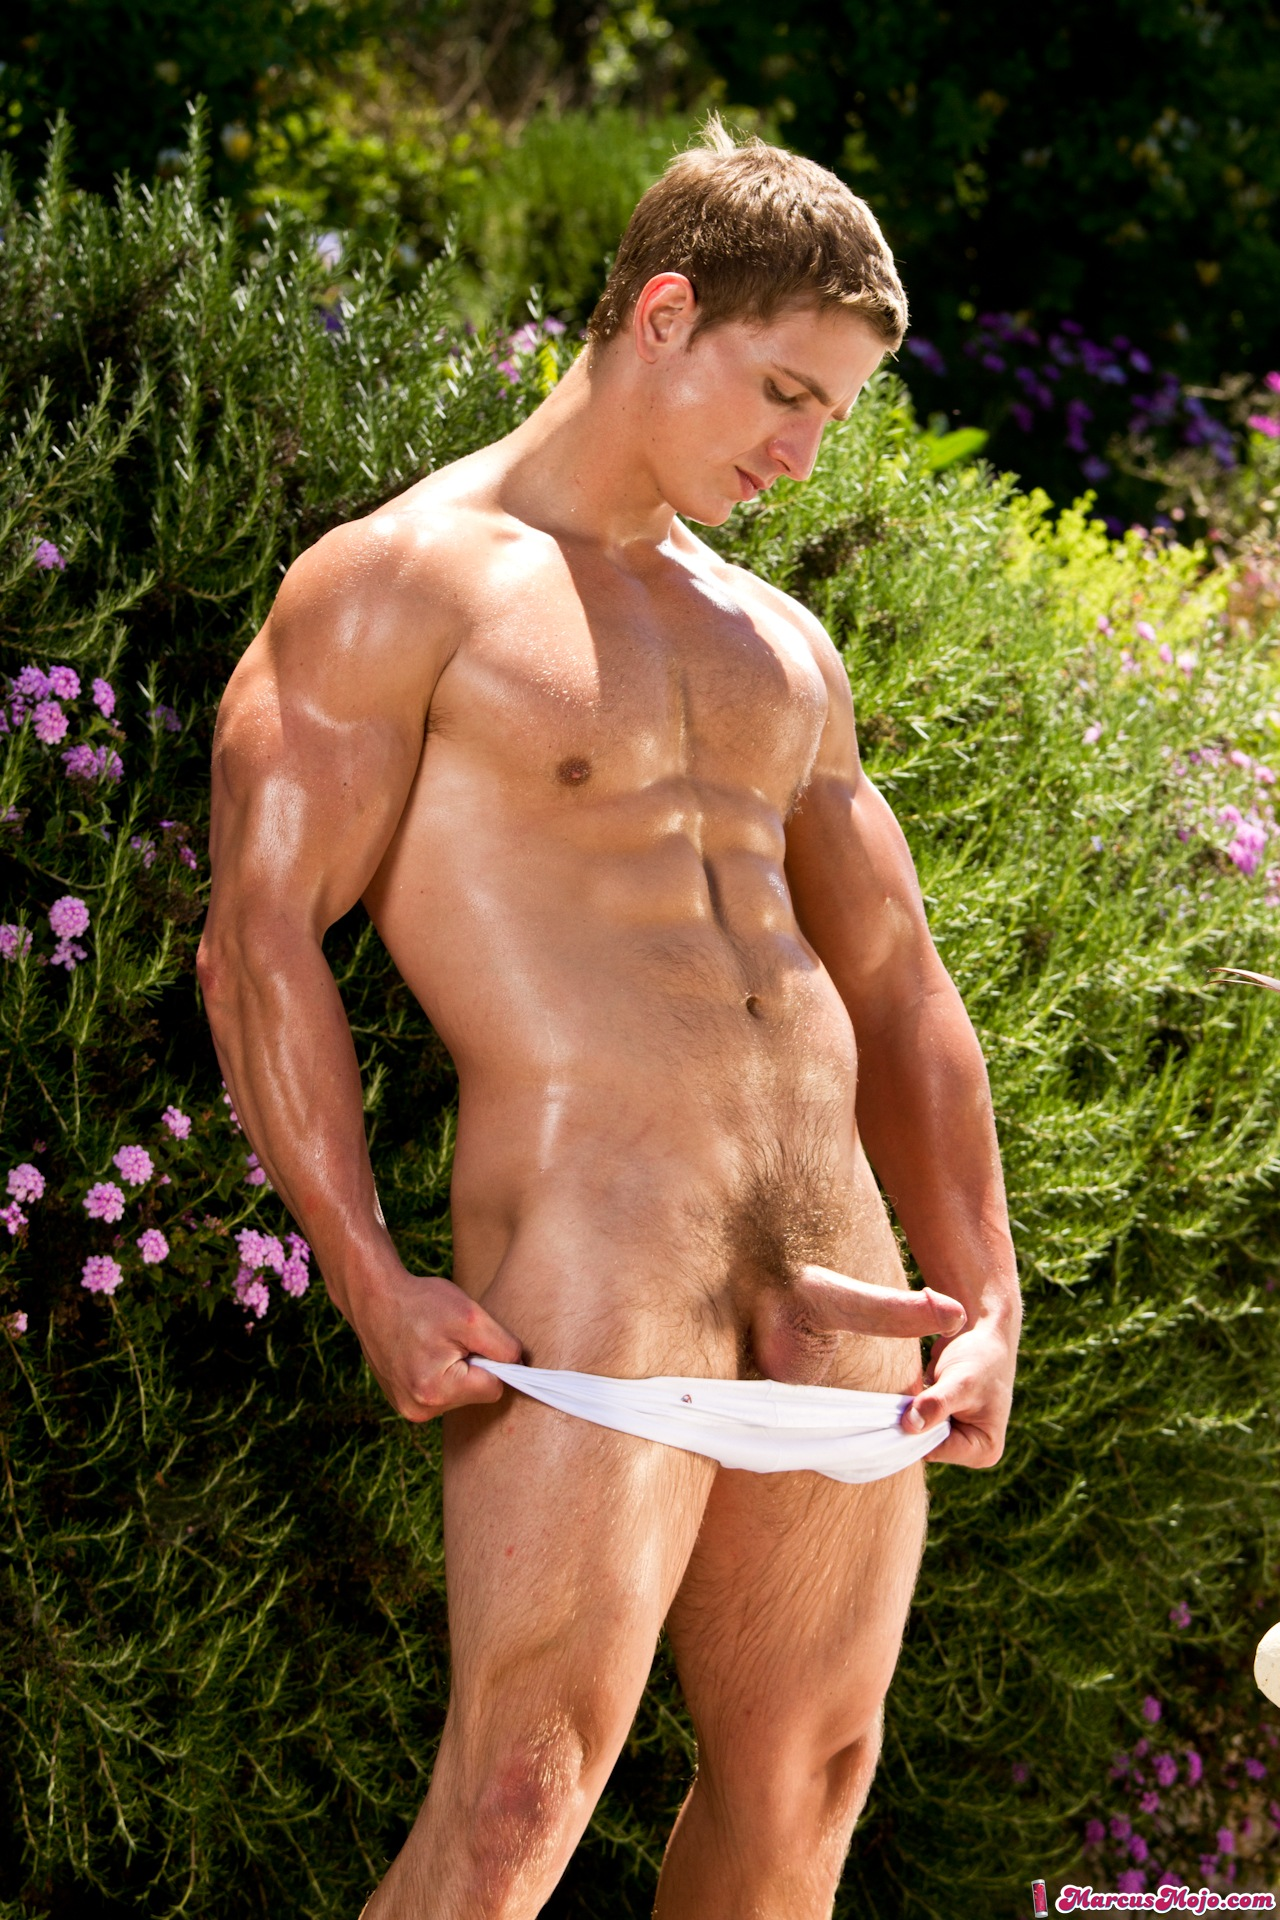 Hot gay the stud delivers towels as 9